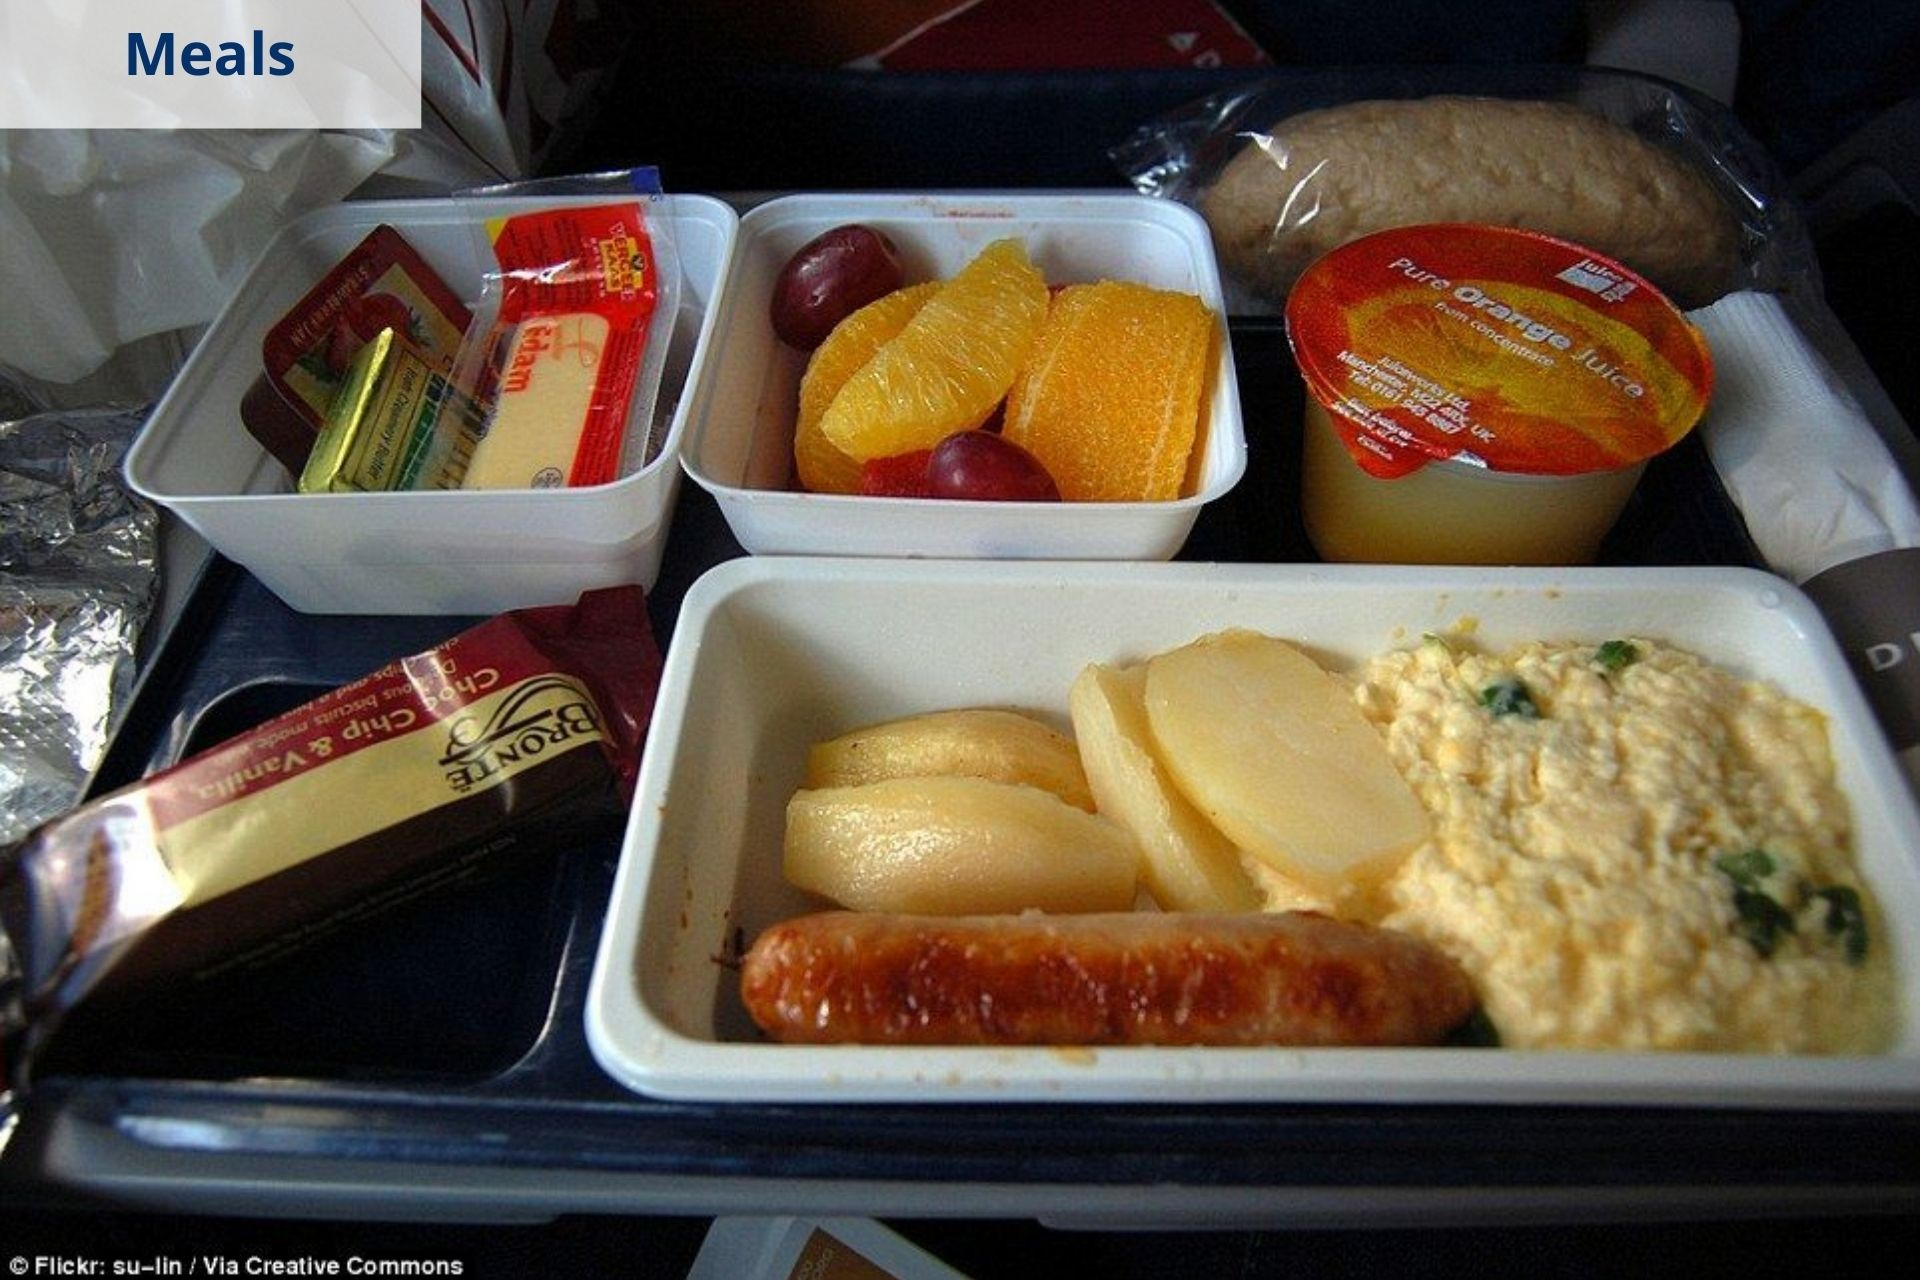 Delta Airlines meals